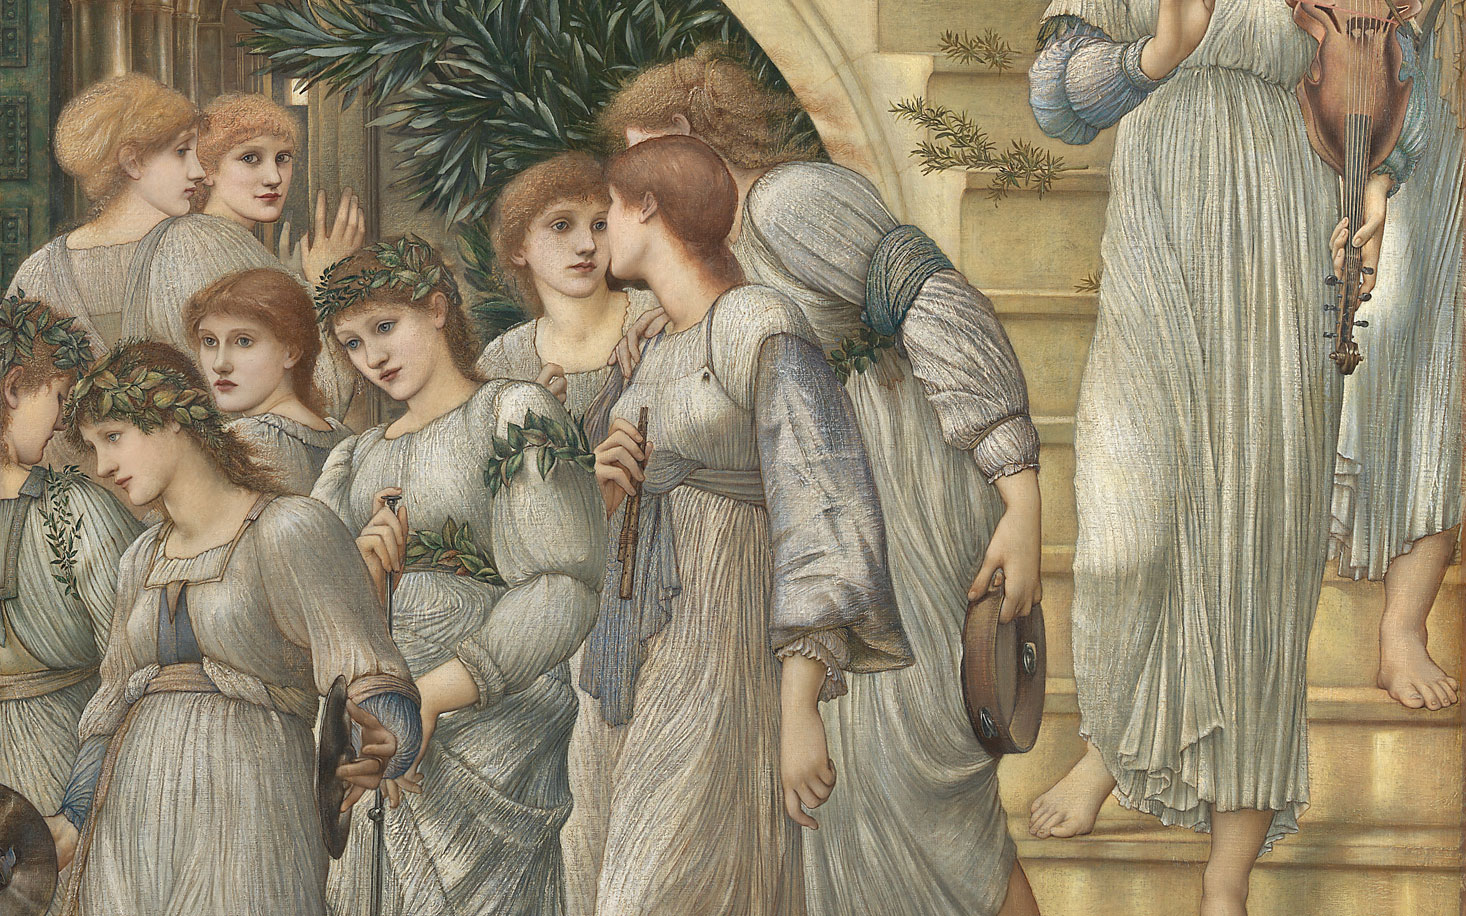 The maidens on the stairs